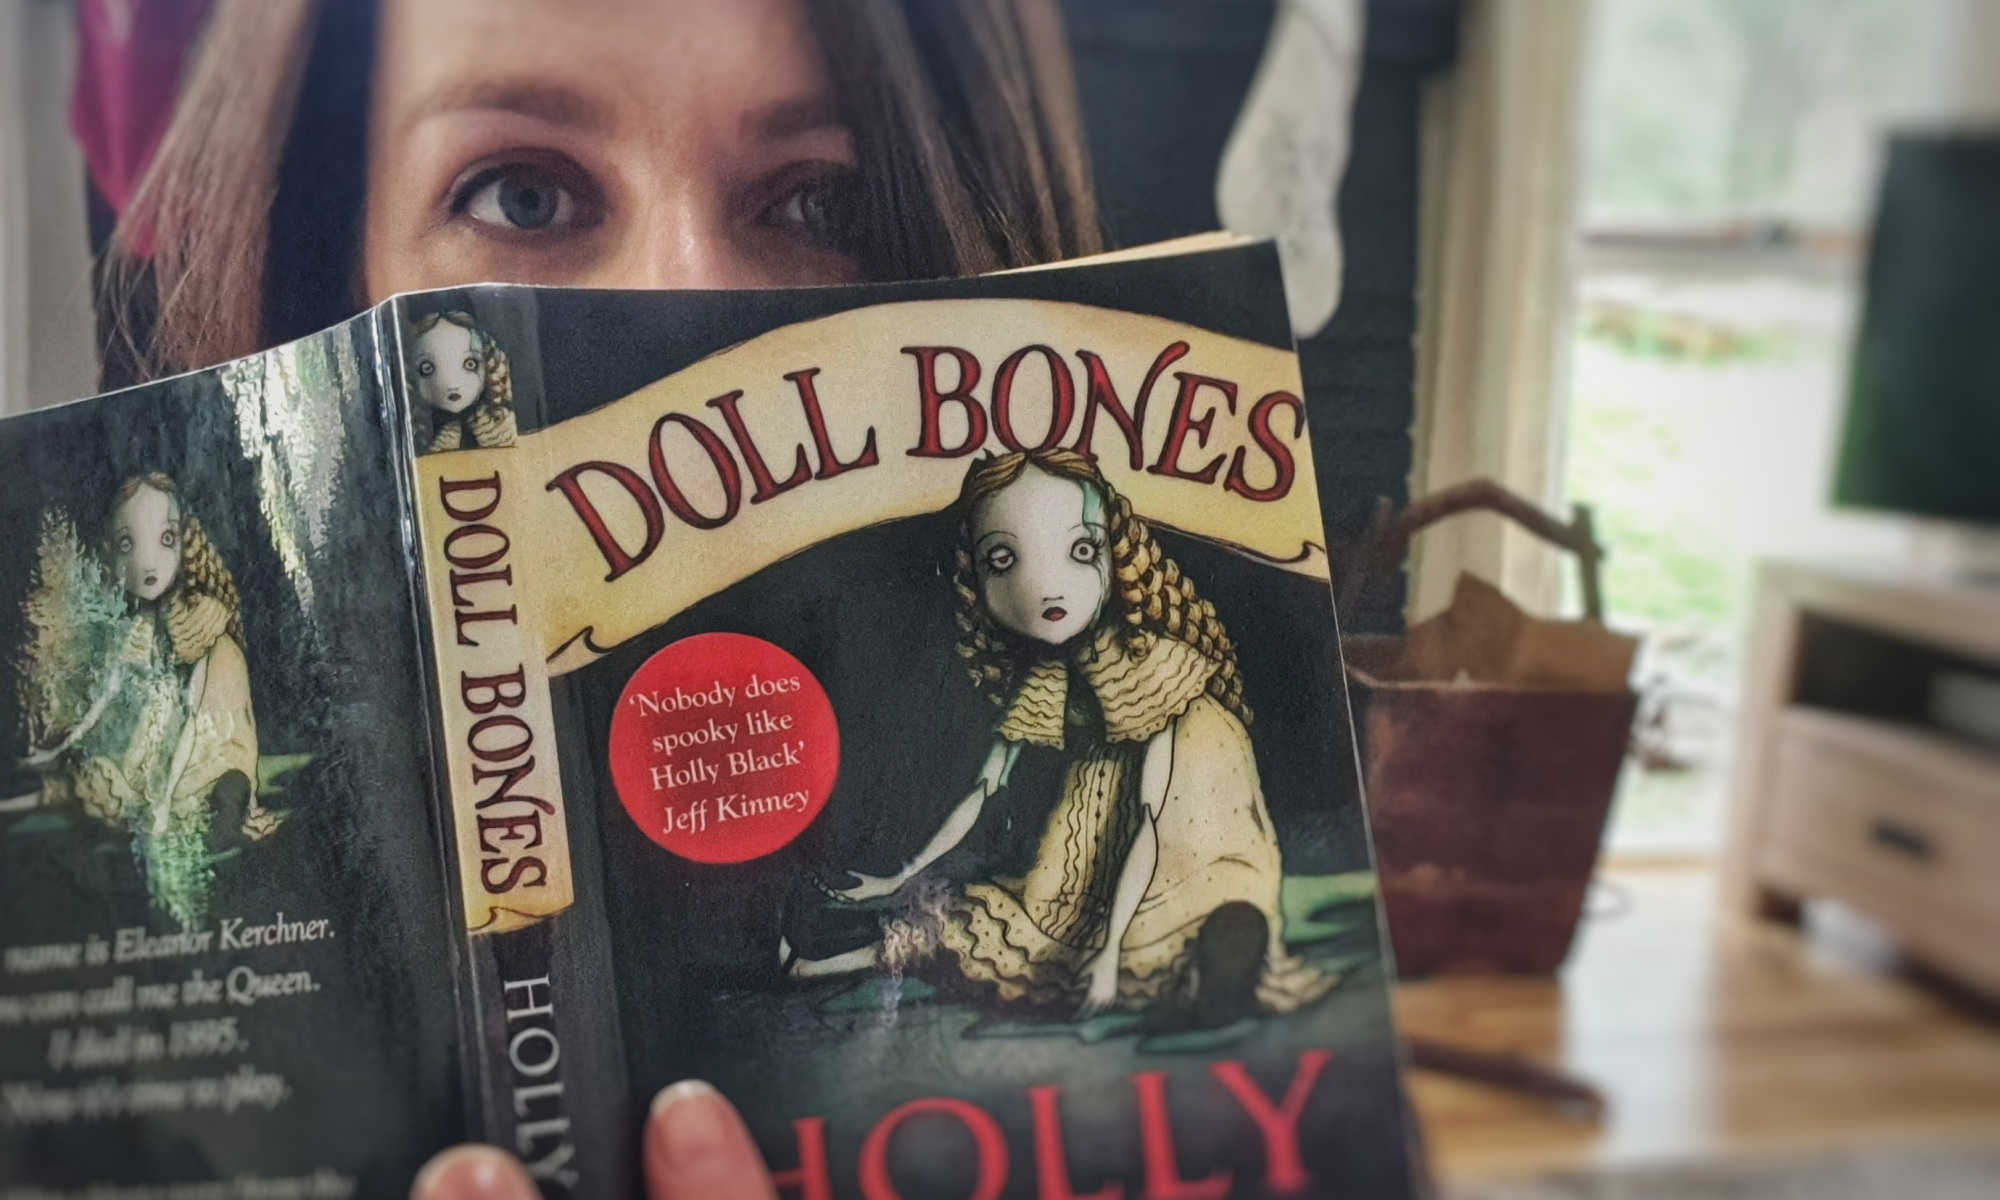 Doll Bones, a book review by Geni Kuckhahn